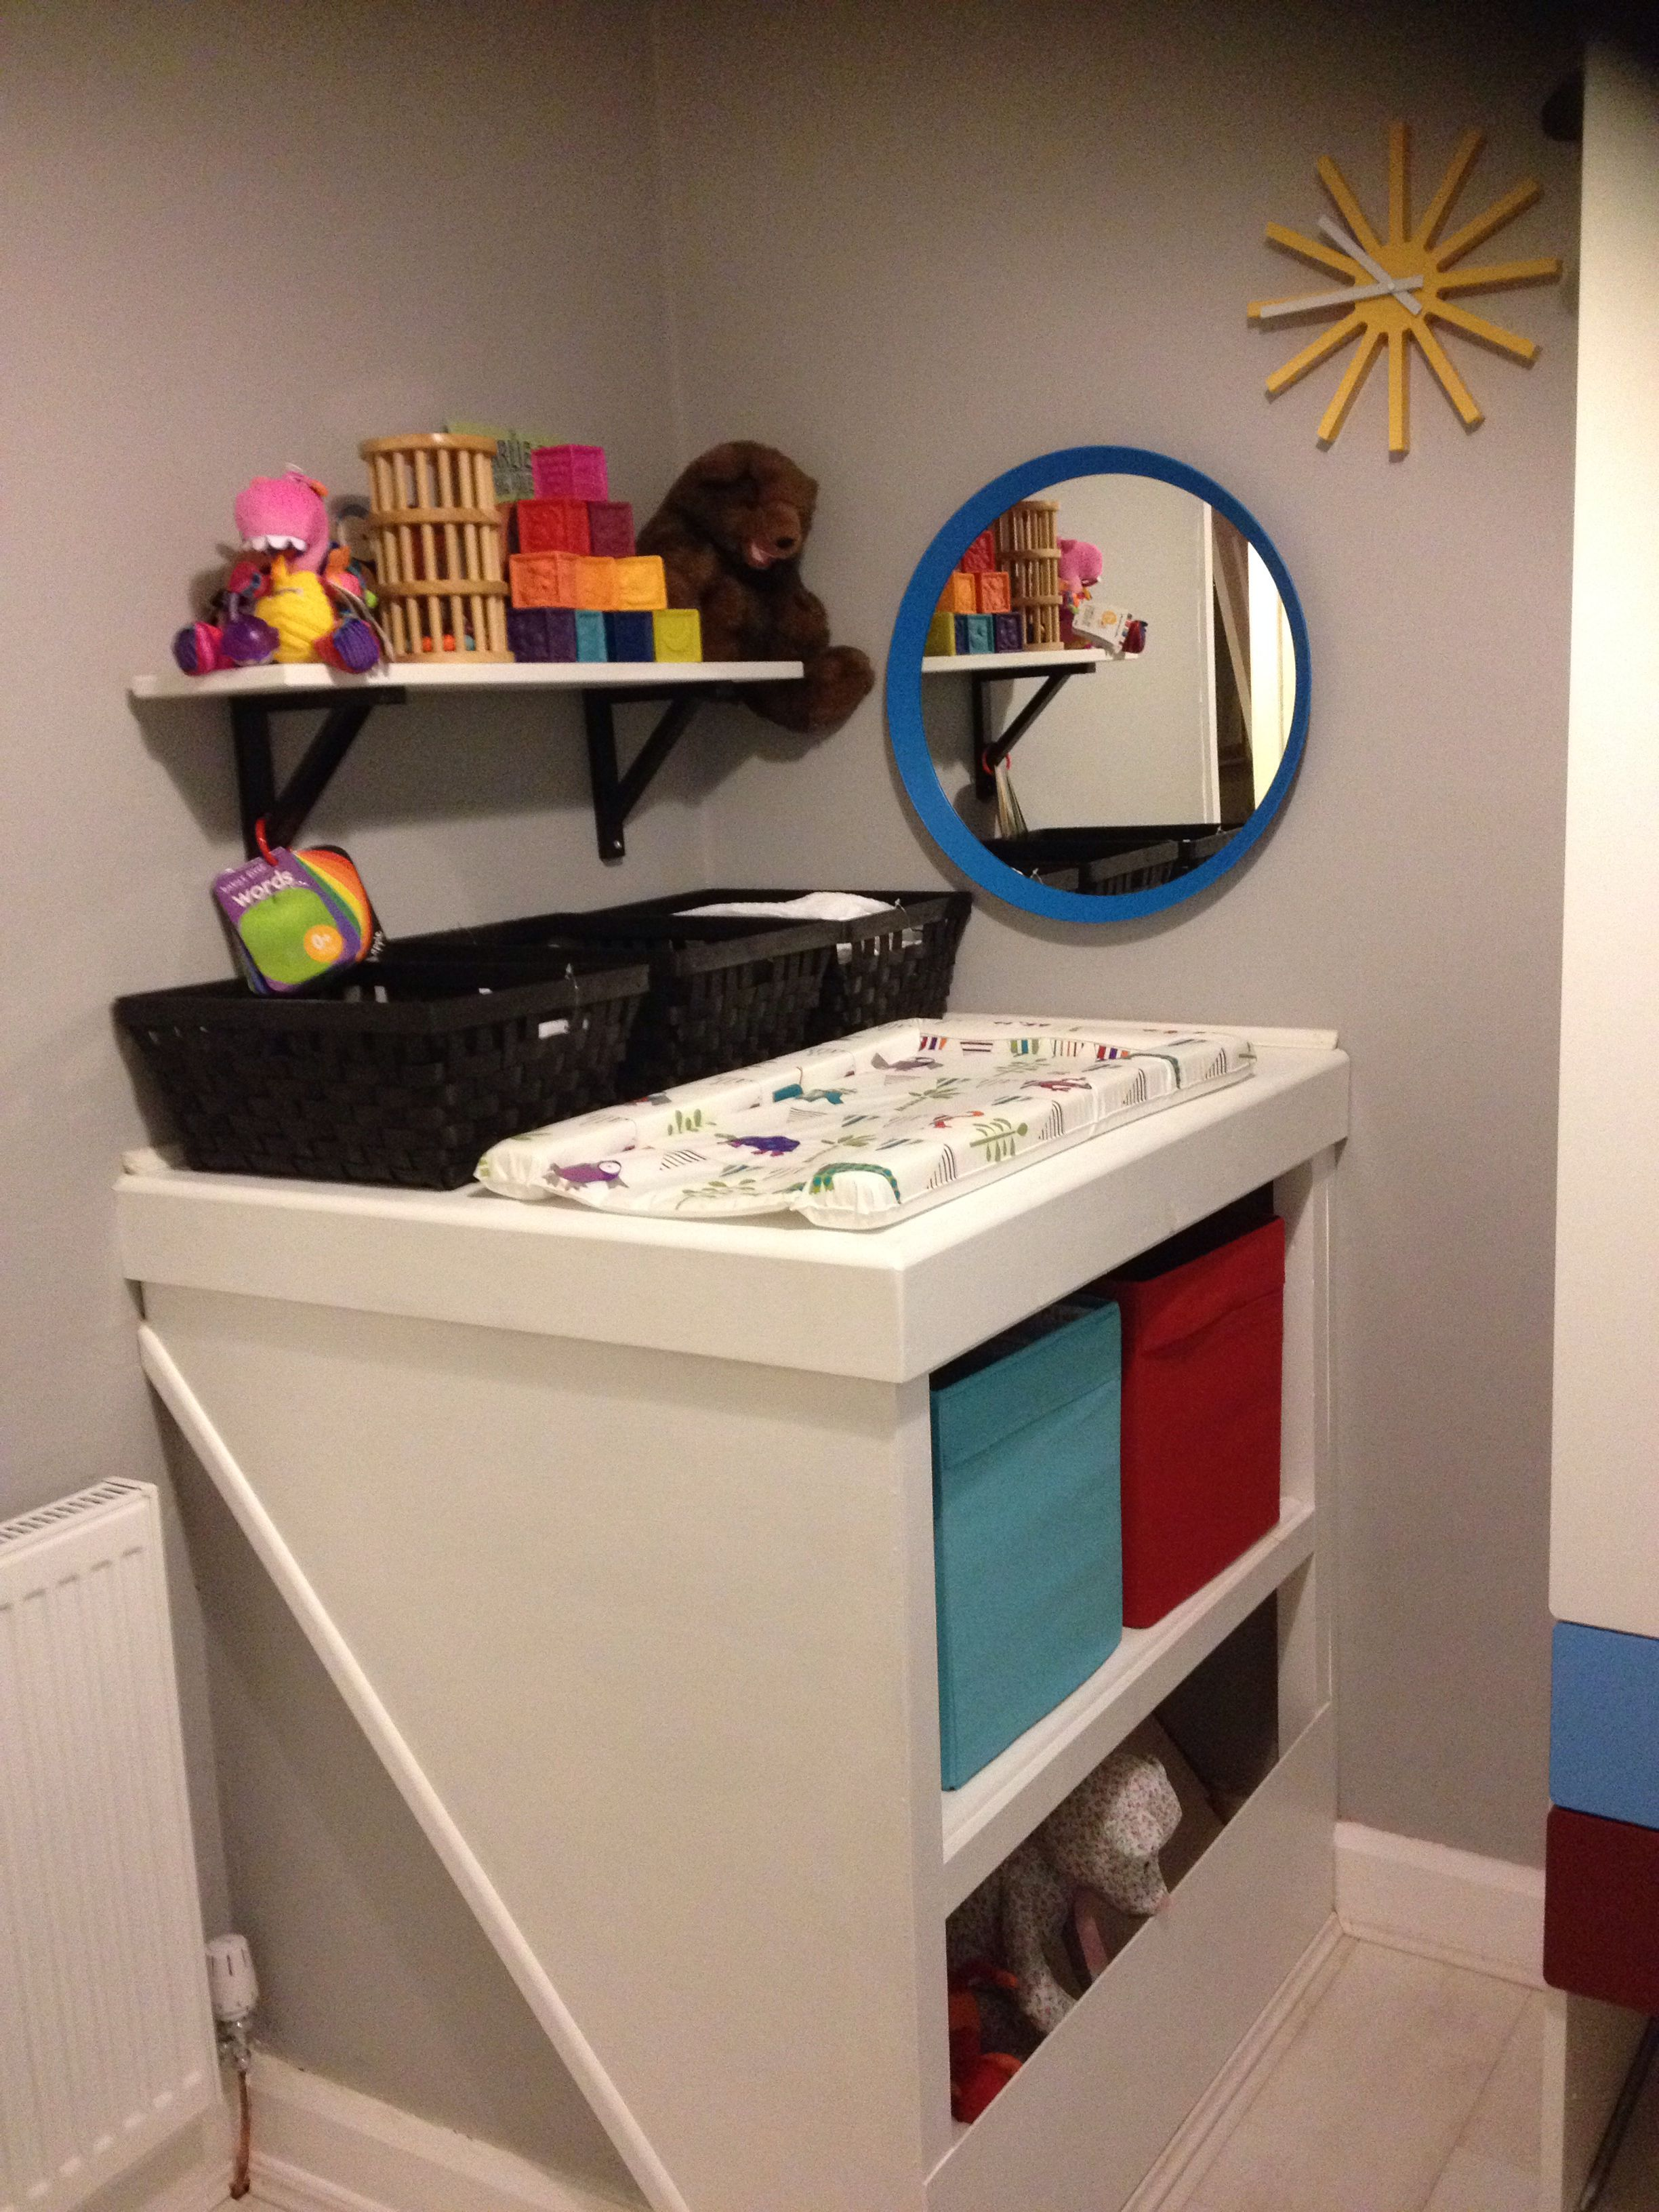 Home Made Built In Changing Table Storage Over Bulk Head Box Room Bedroom Ideas Box Room Bedroom Ideas For Kids Stair Box In Bedroom